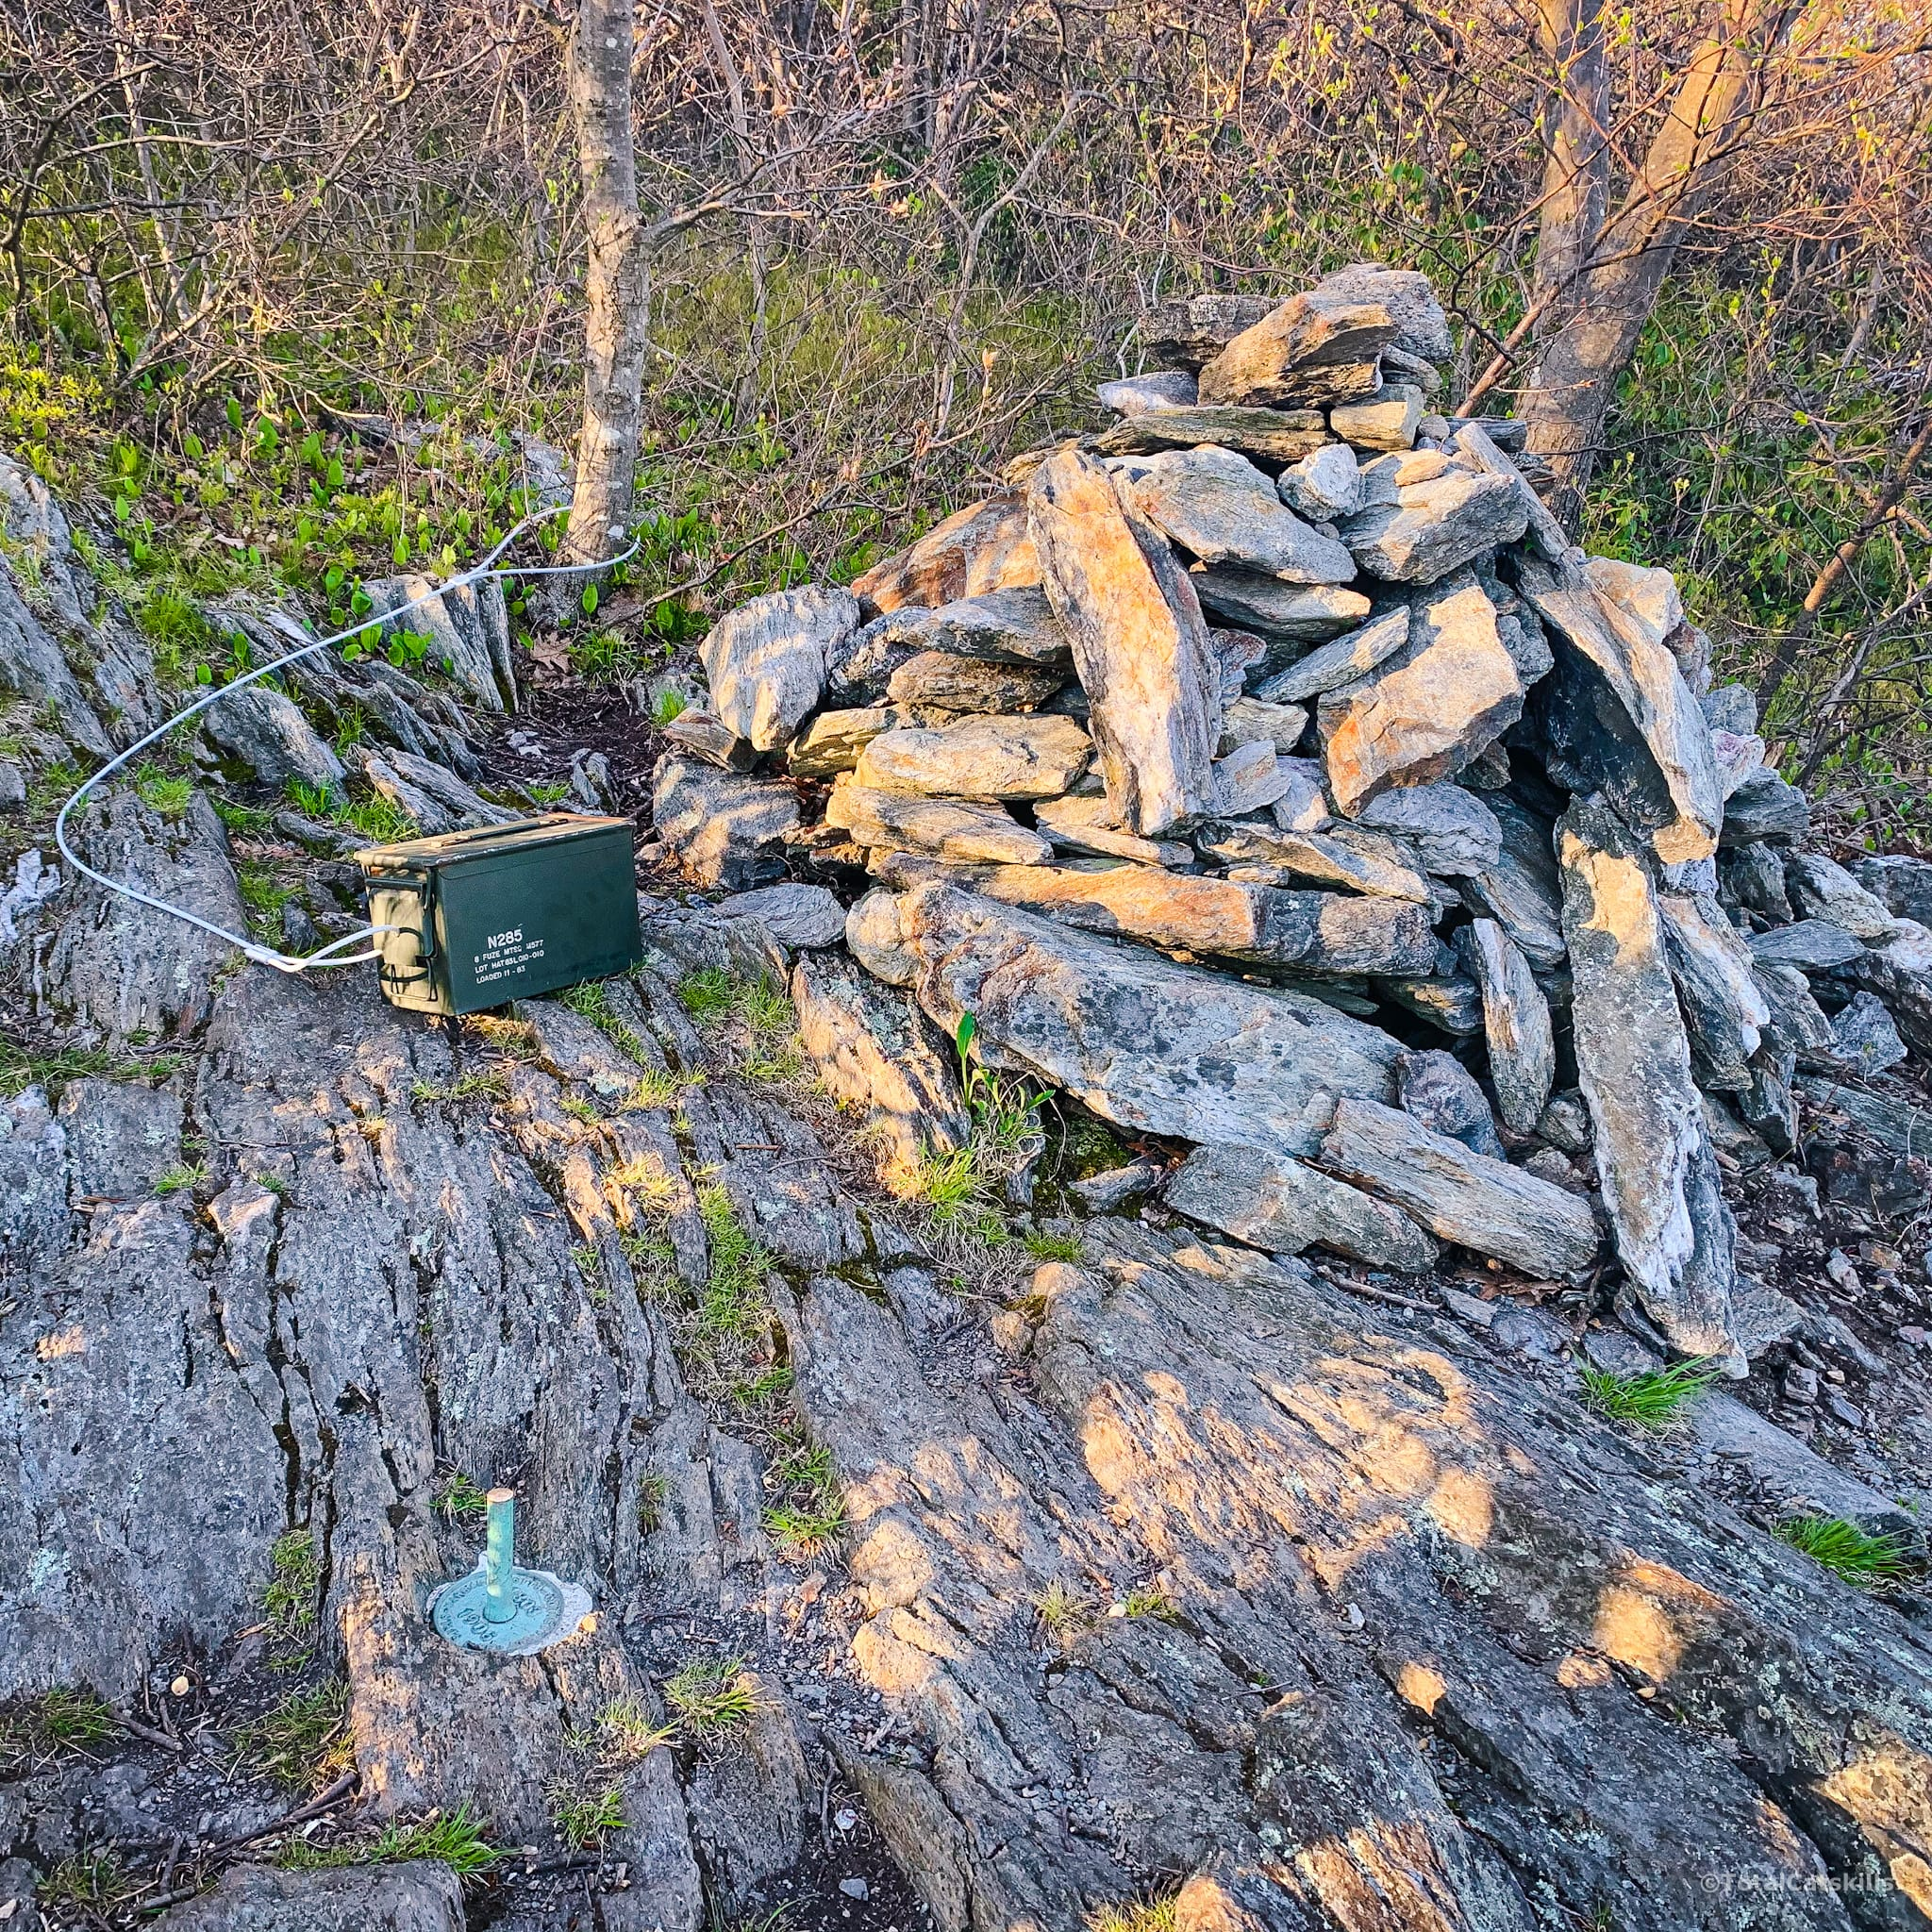 cairn and register